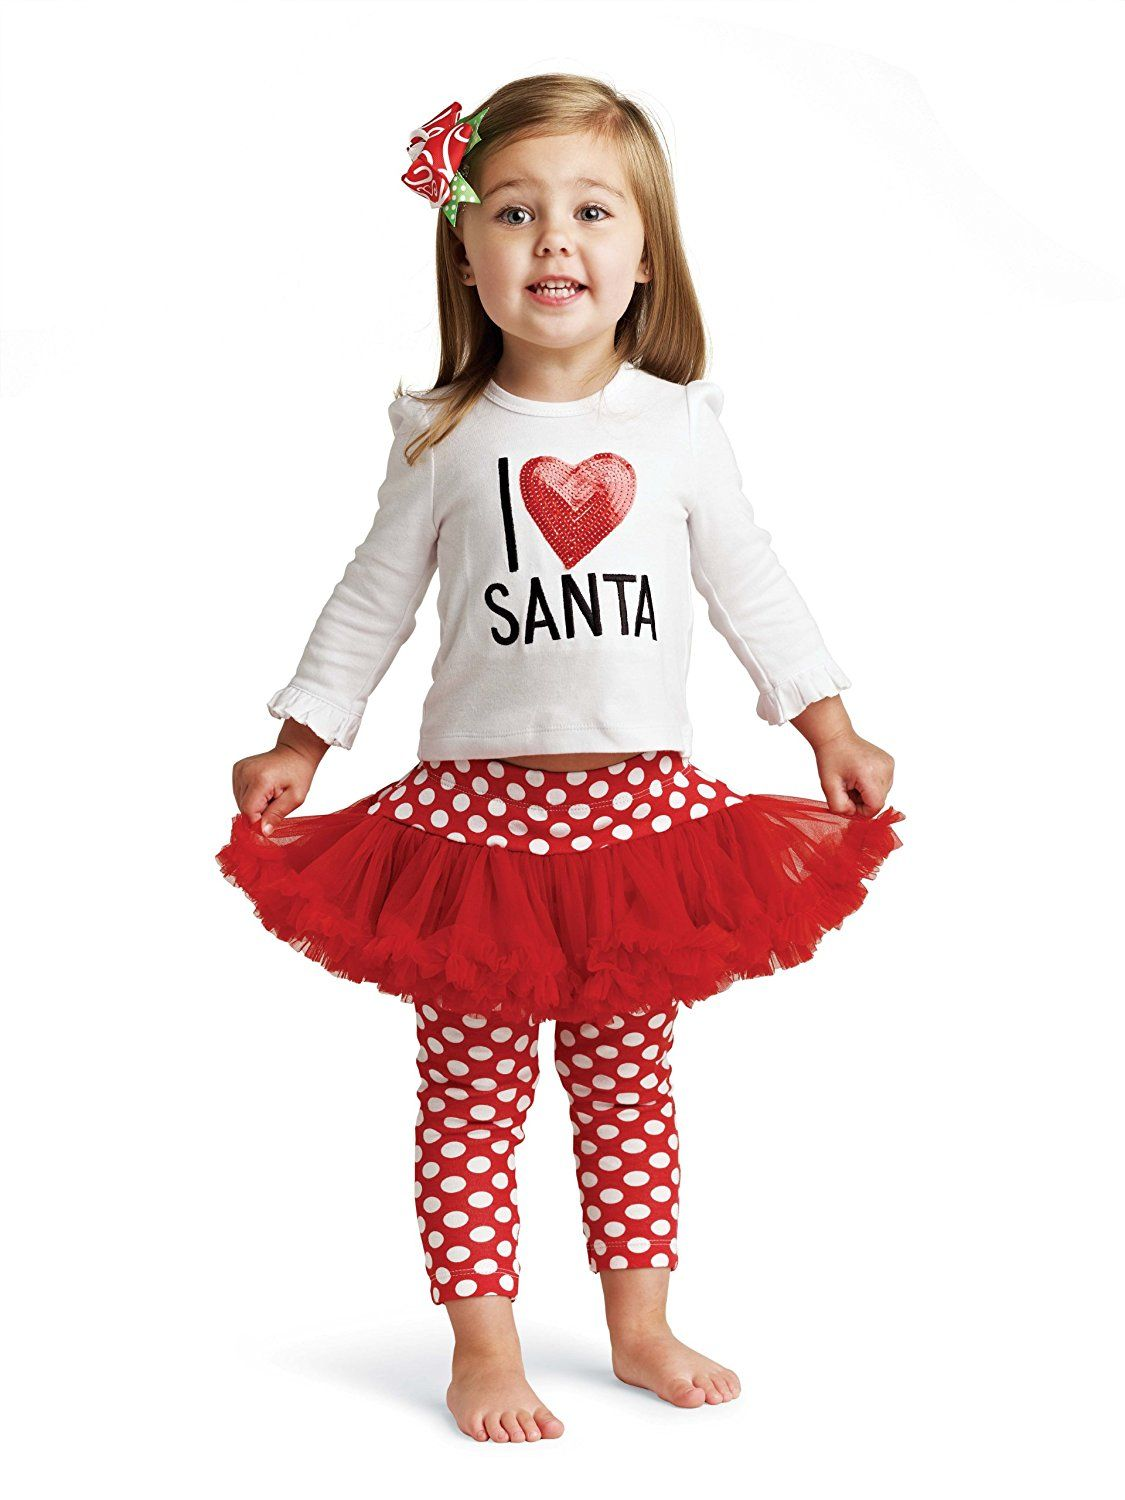 Mud Pie Toddler Girls Christmas Outfits | www.topsimages.com